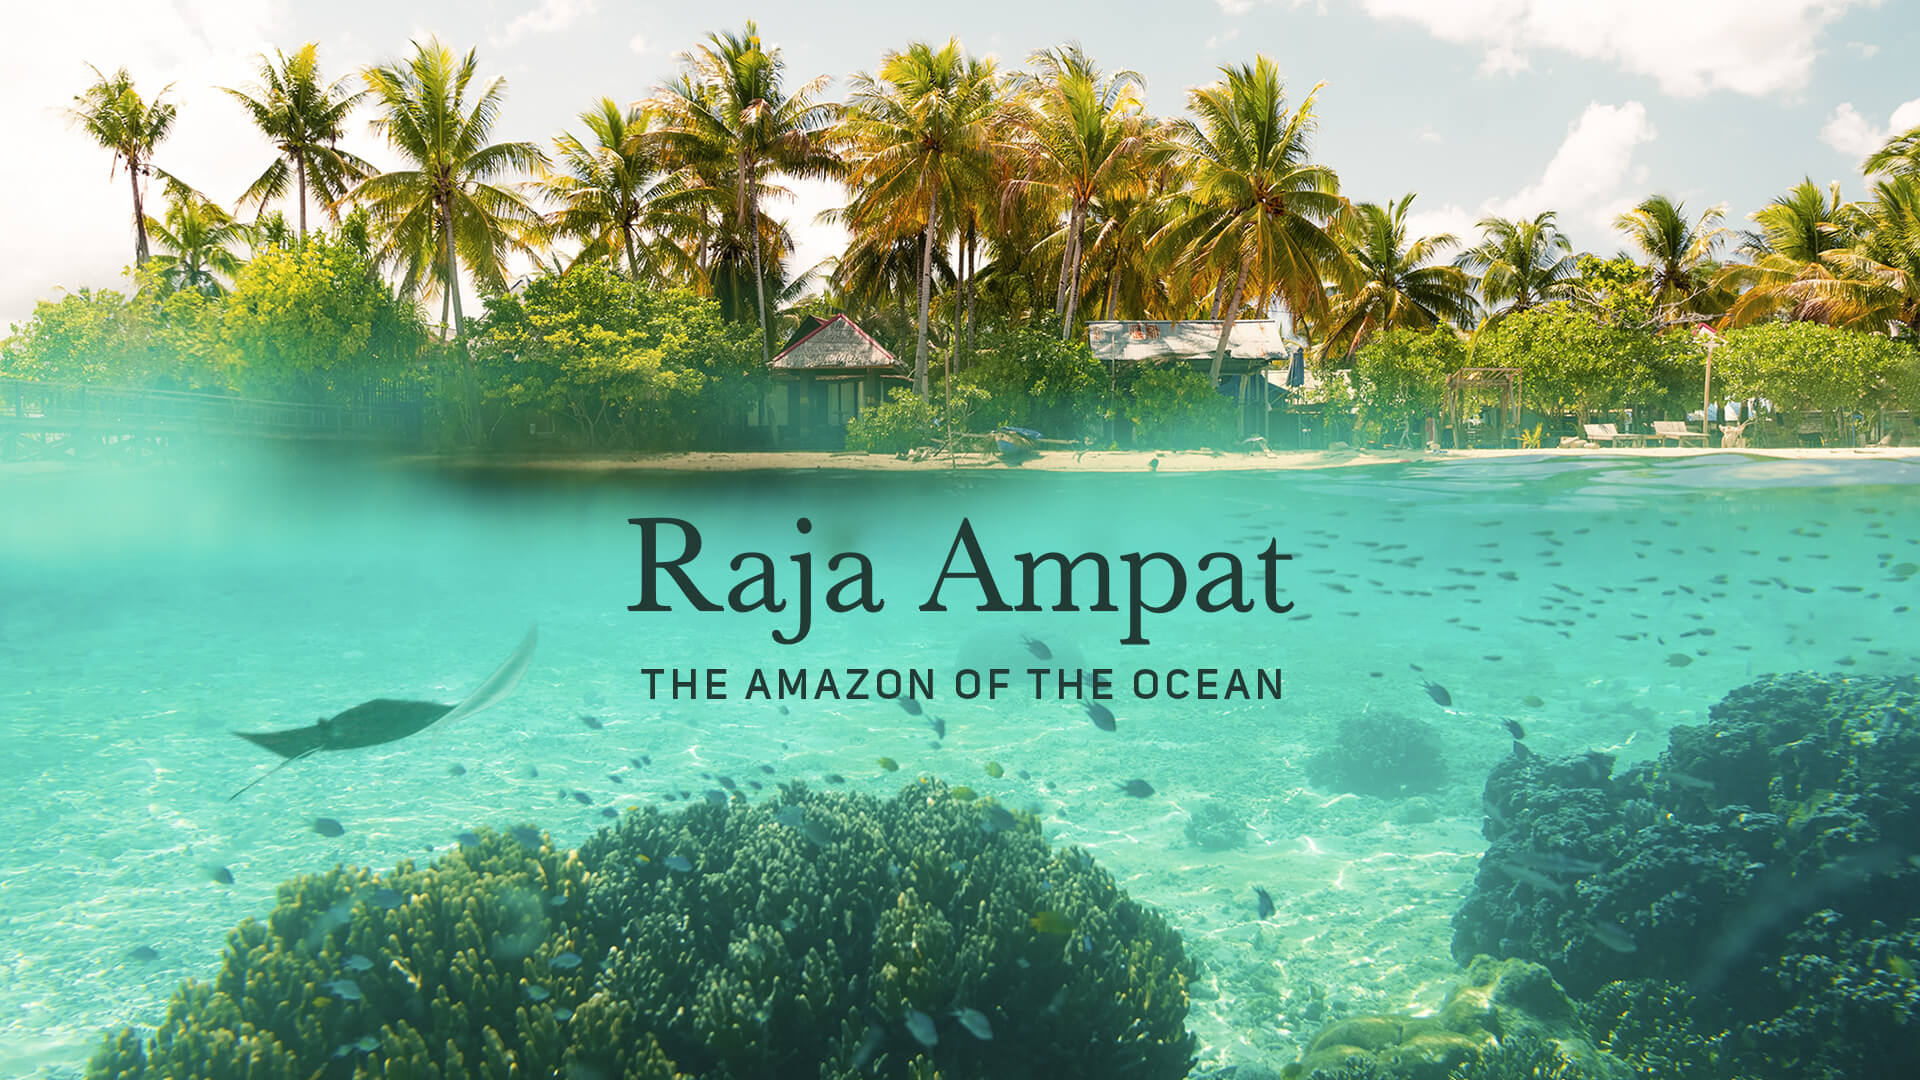 Raja Ampat Video Cover